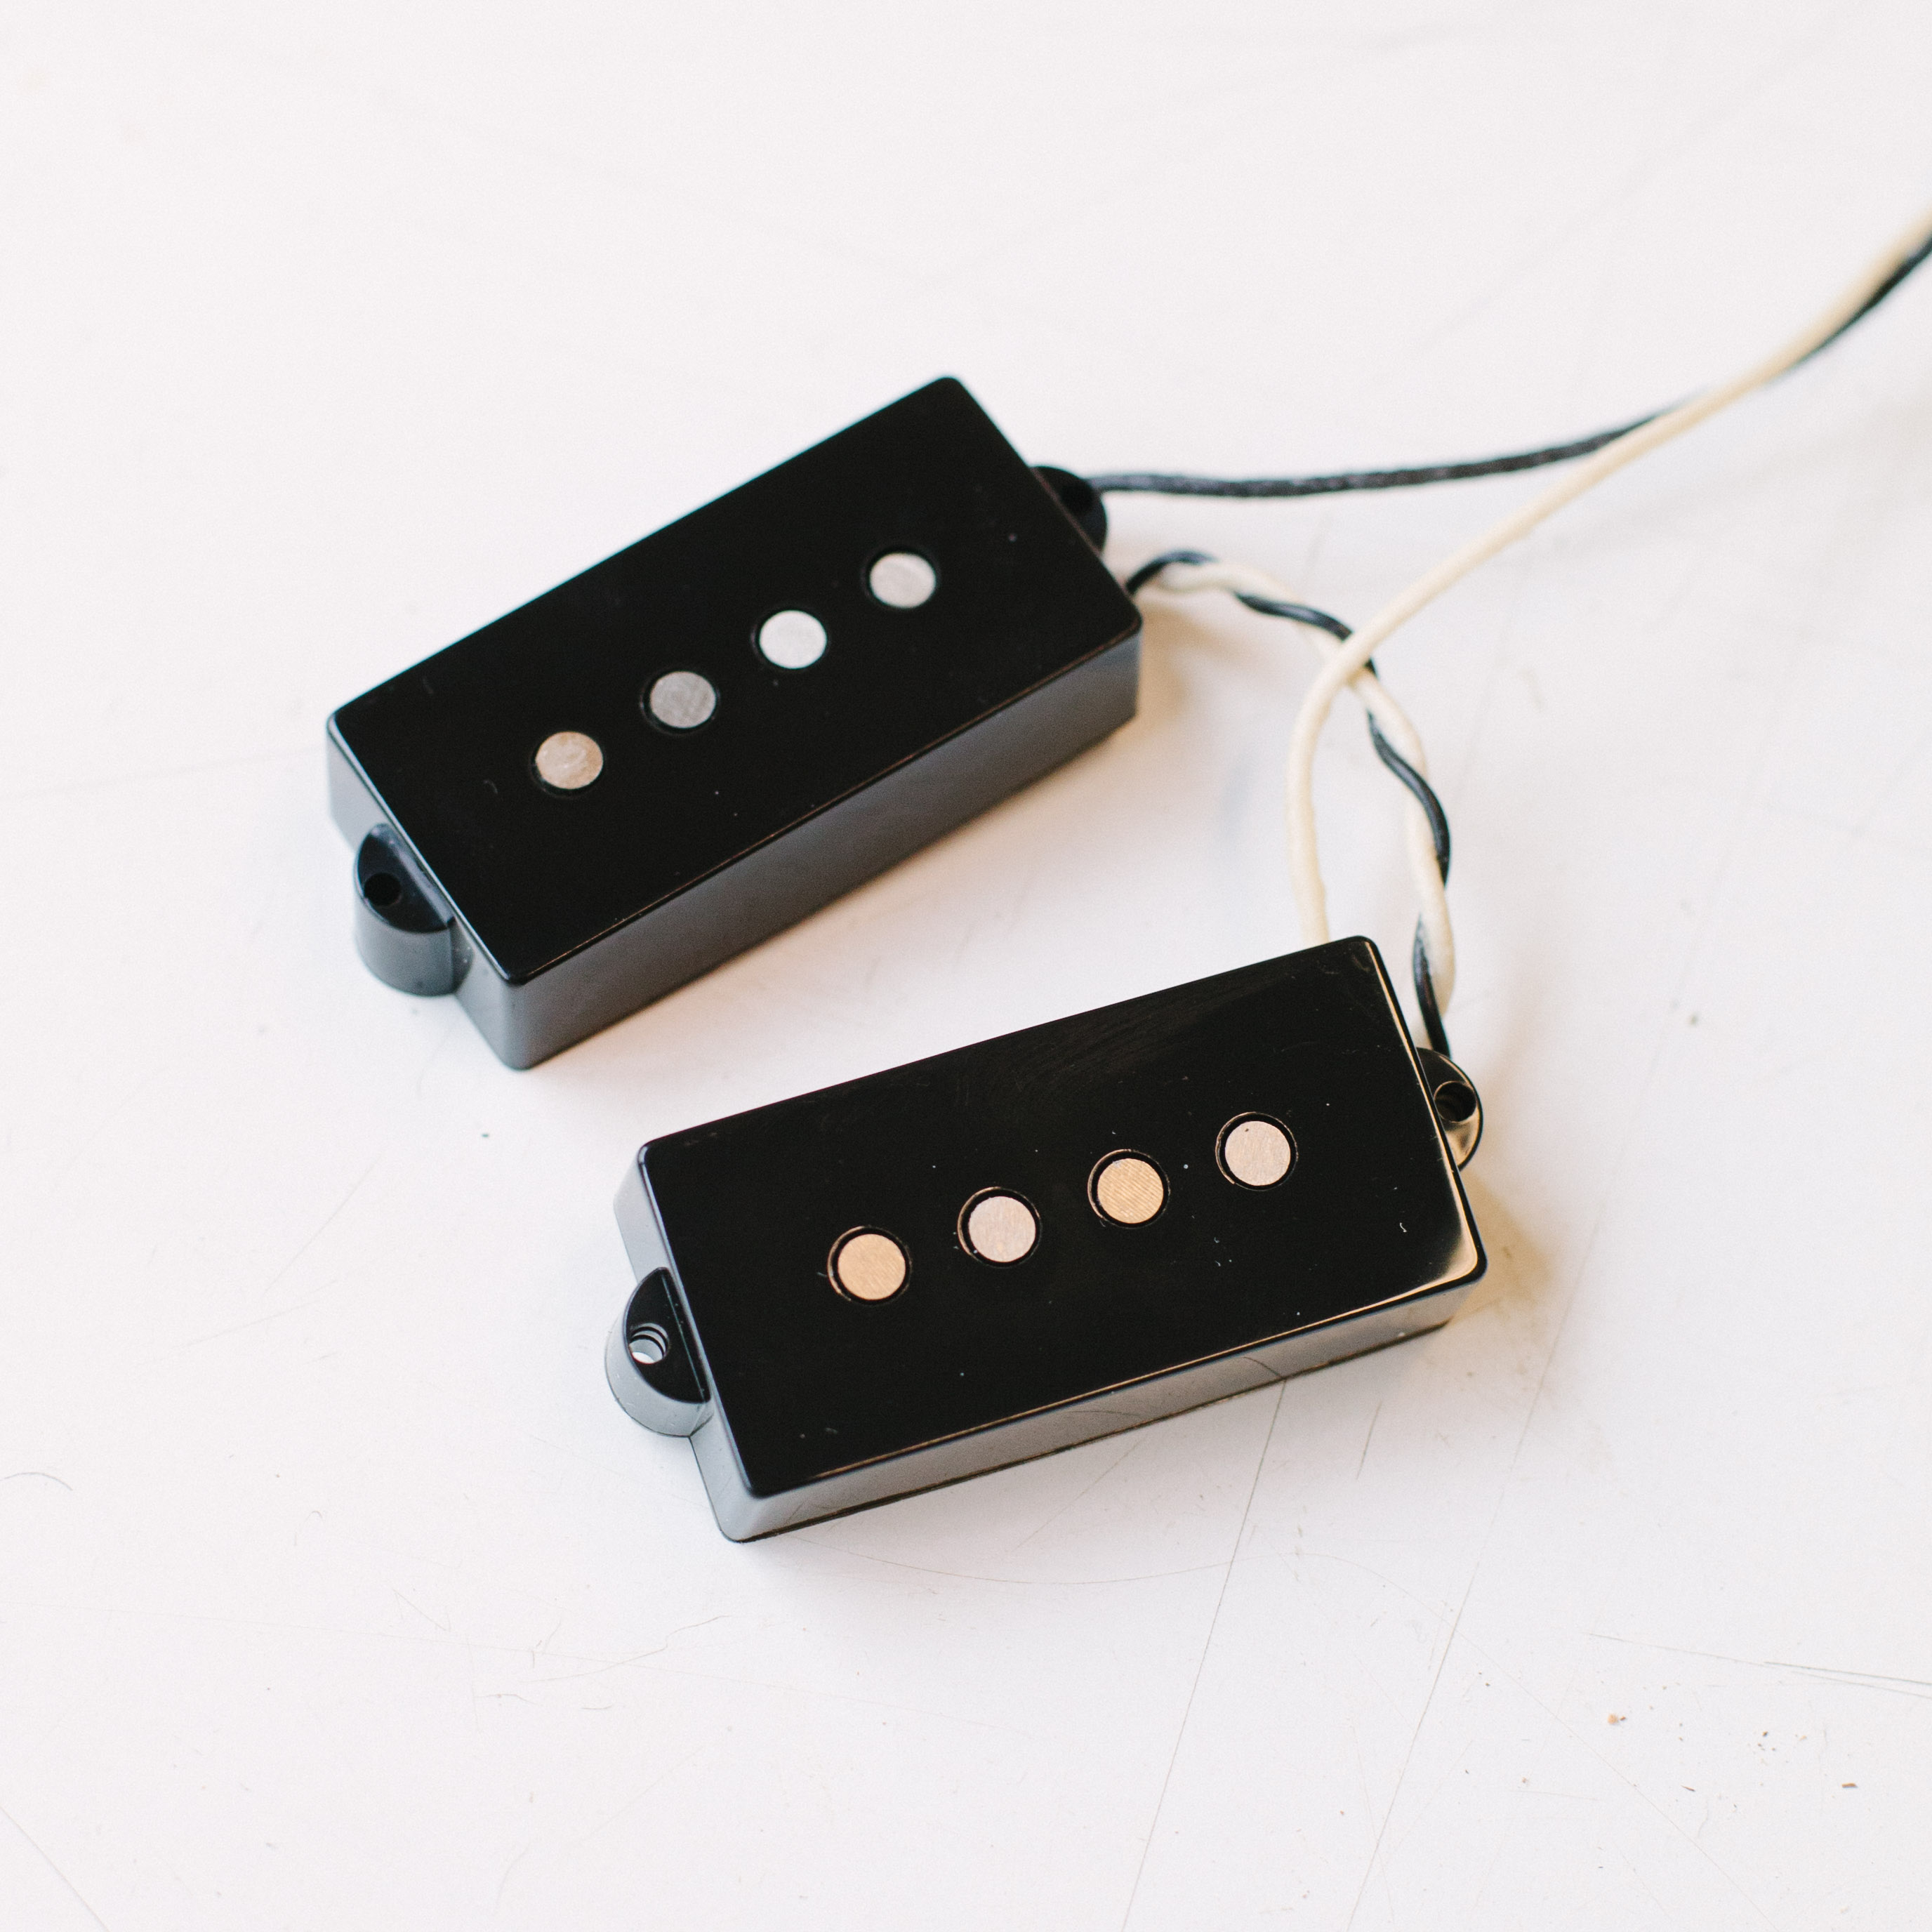 Bass Guitar Pickups Custom Shop Note These Are Passive Tone Controls Components In A Fodera Duncan Dual Coil